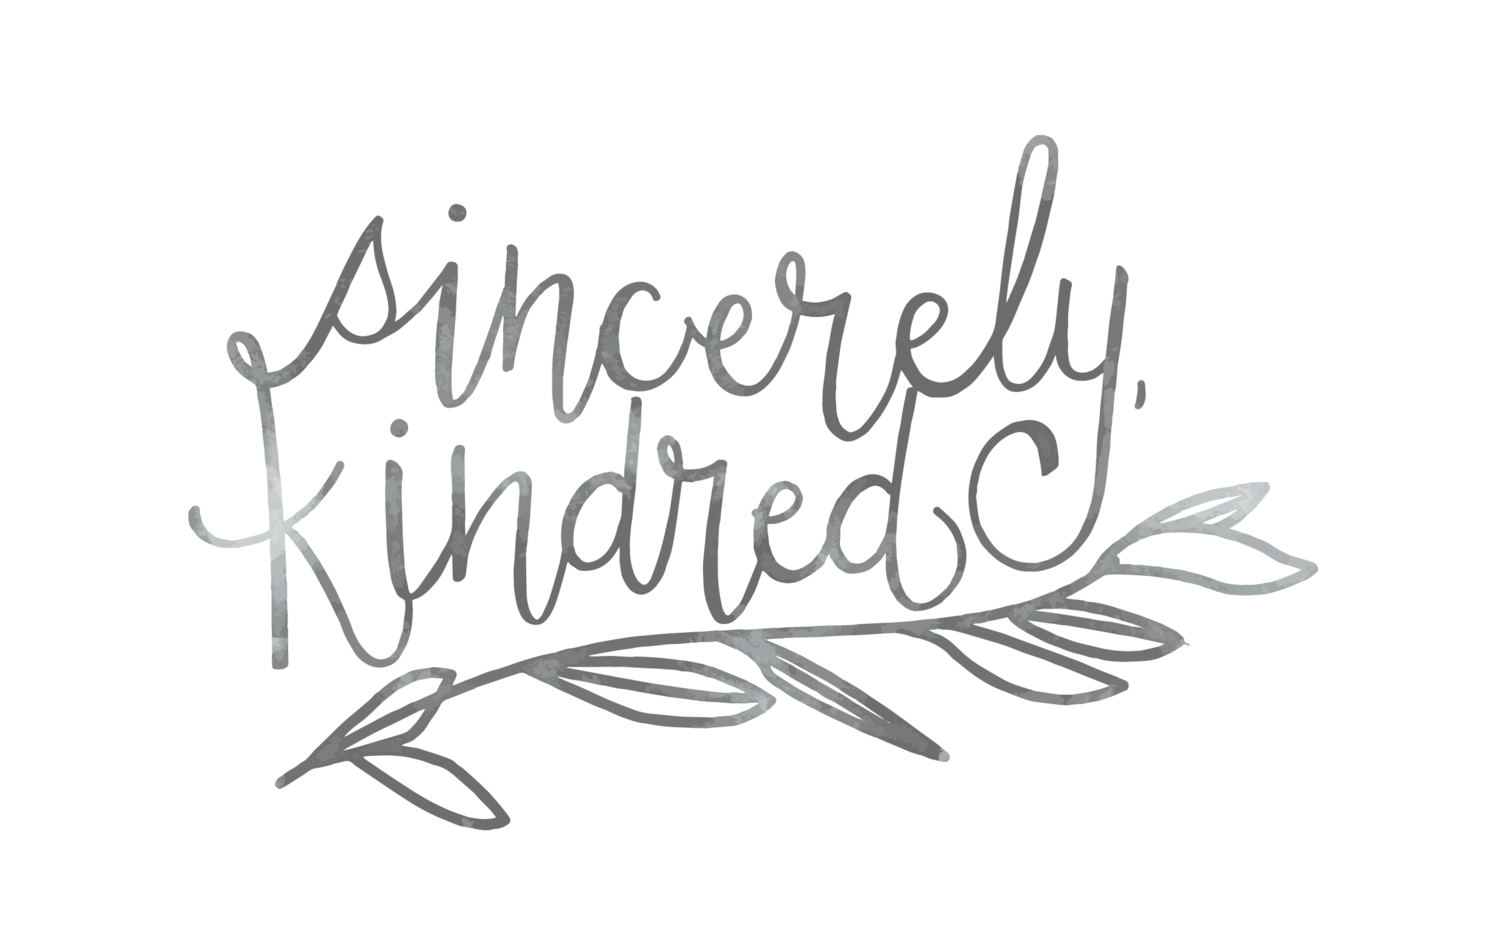 Sincerely, Kindred